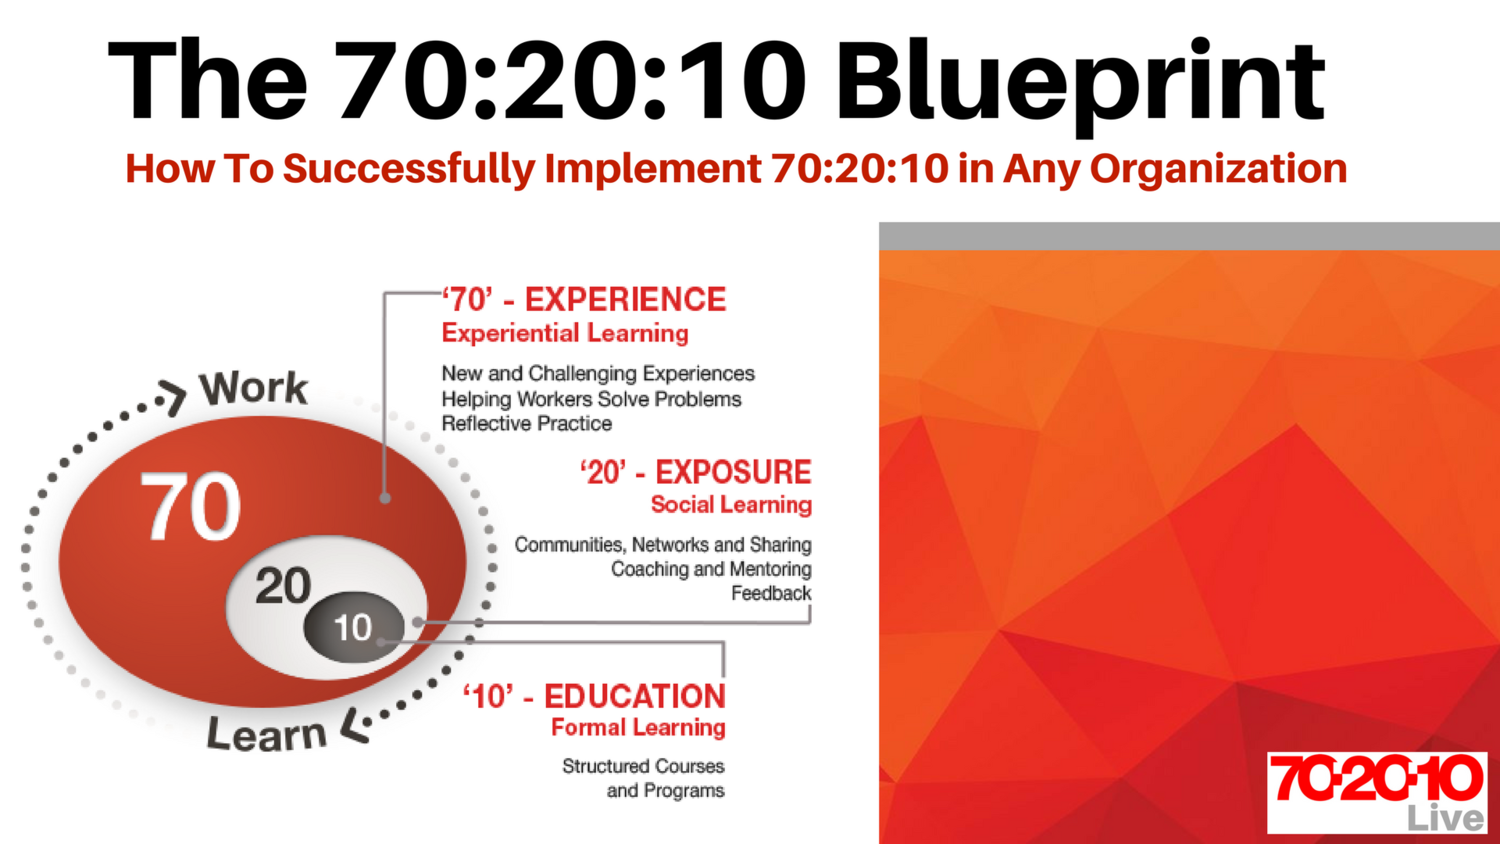 702010 blueprint tools resources videos 702010 case studies unlock superior 702010 results in your organization malvernweather Images